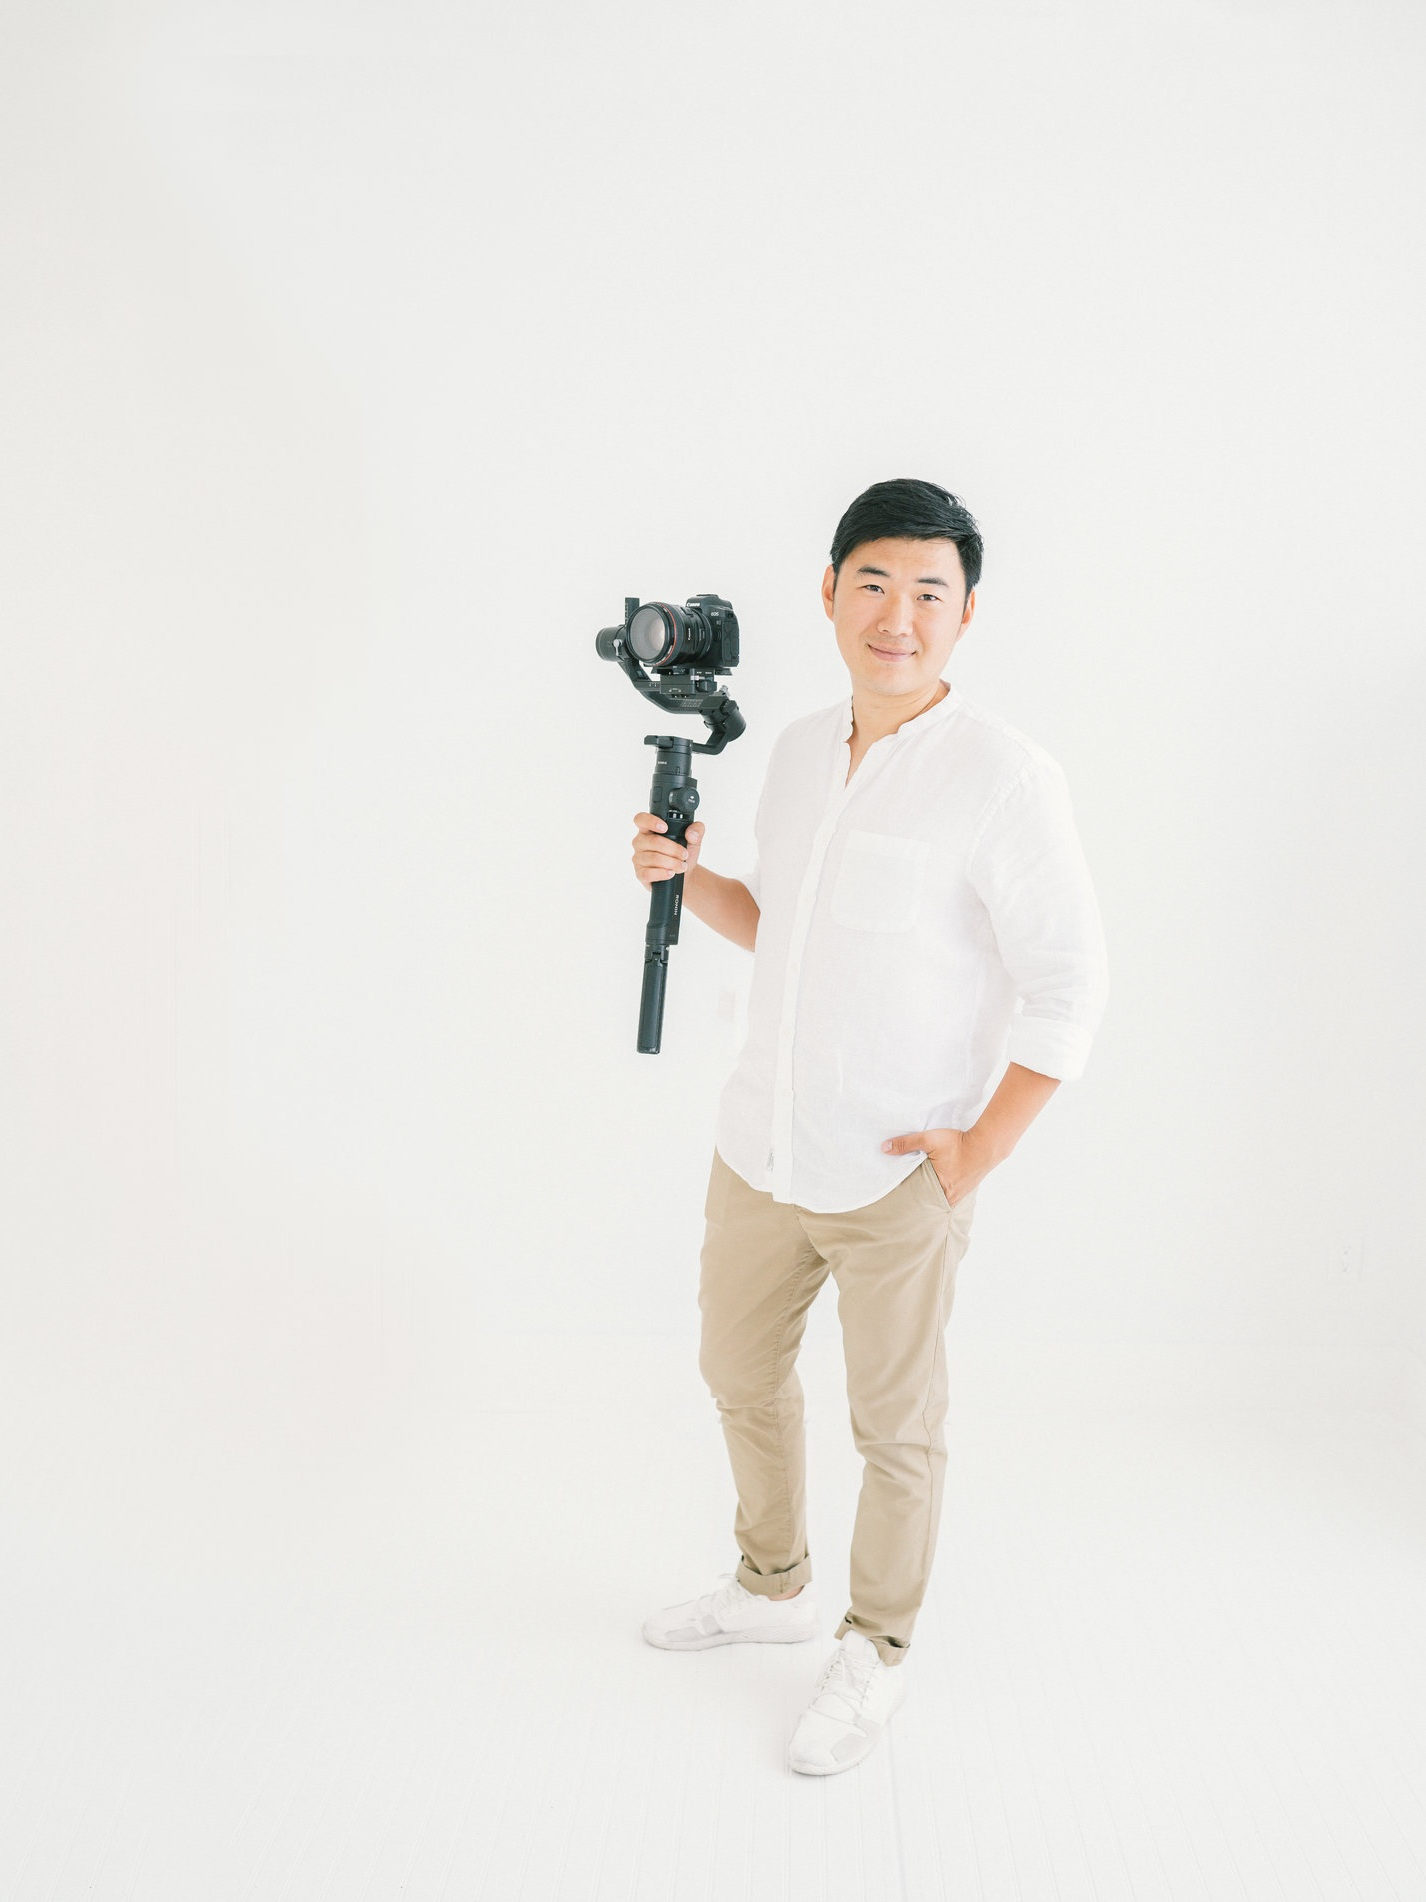 Hi, I'm Anton - Five years ago, I came across a beautifully done wedding video, and I fell in love. I watched it over and over again, and I fell in love with the art of storytelling through cinematography. That day, I set out to learn that new, exciting, and extremely complex skill. That was the day I set out to create.